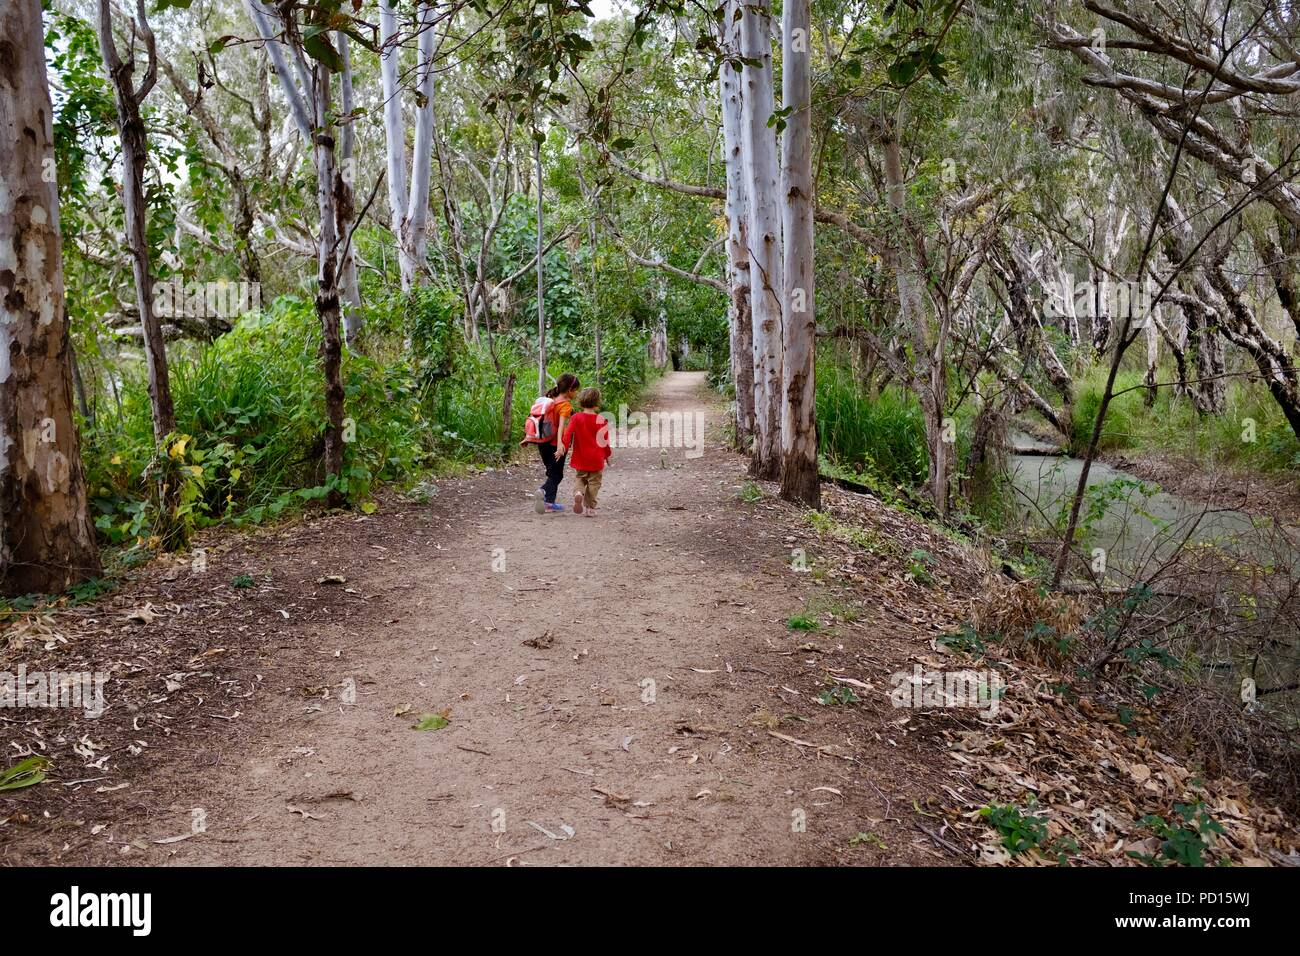 Two school age girls walking along a path, Booroona walking trail on the Ross River, Rasmussen QLD 4815, Australia - Stock Image